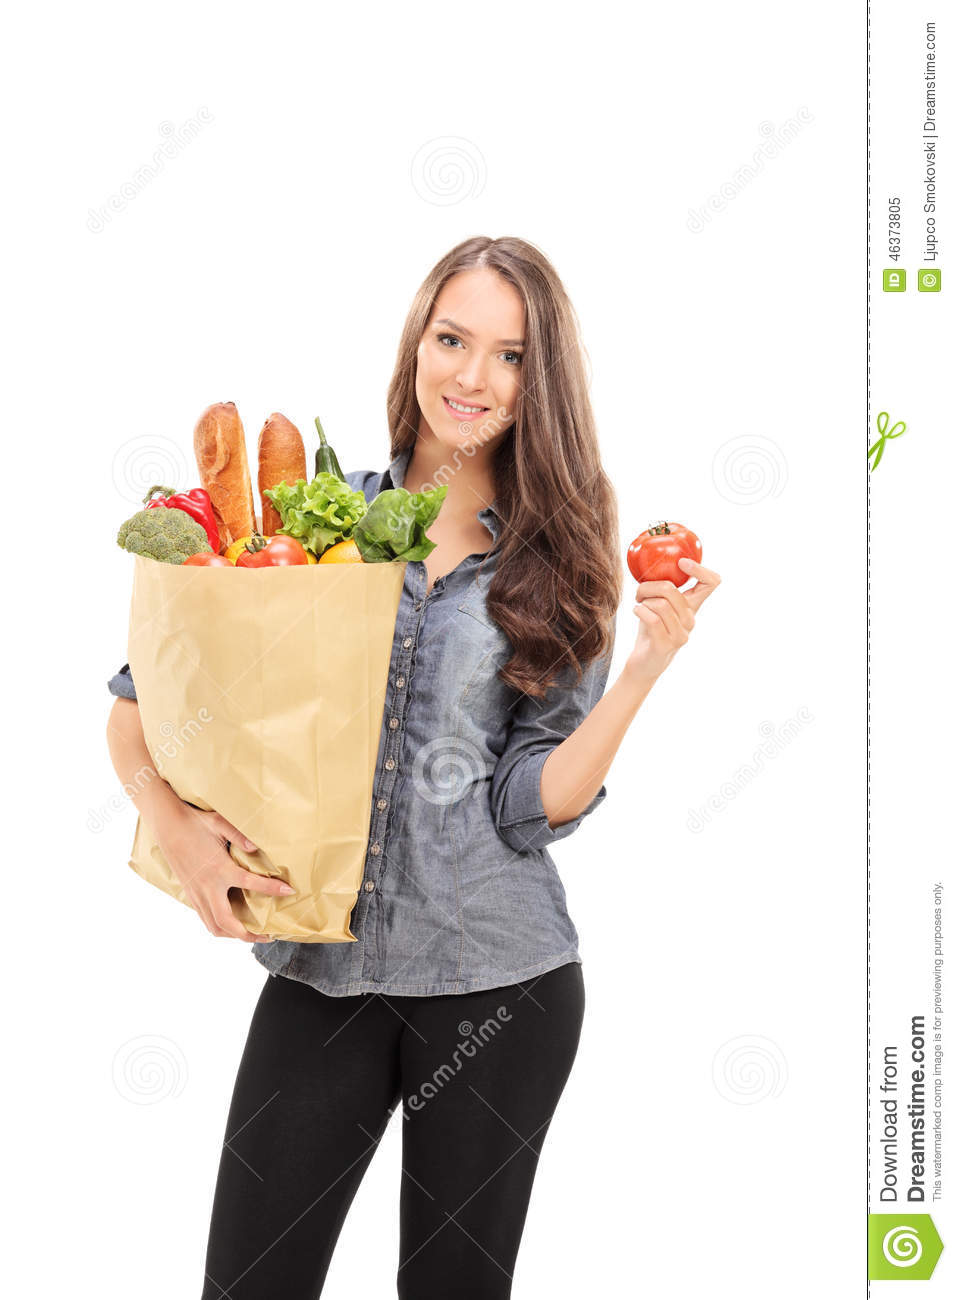 Woman holding grocery bag and a single tomato